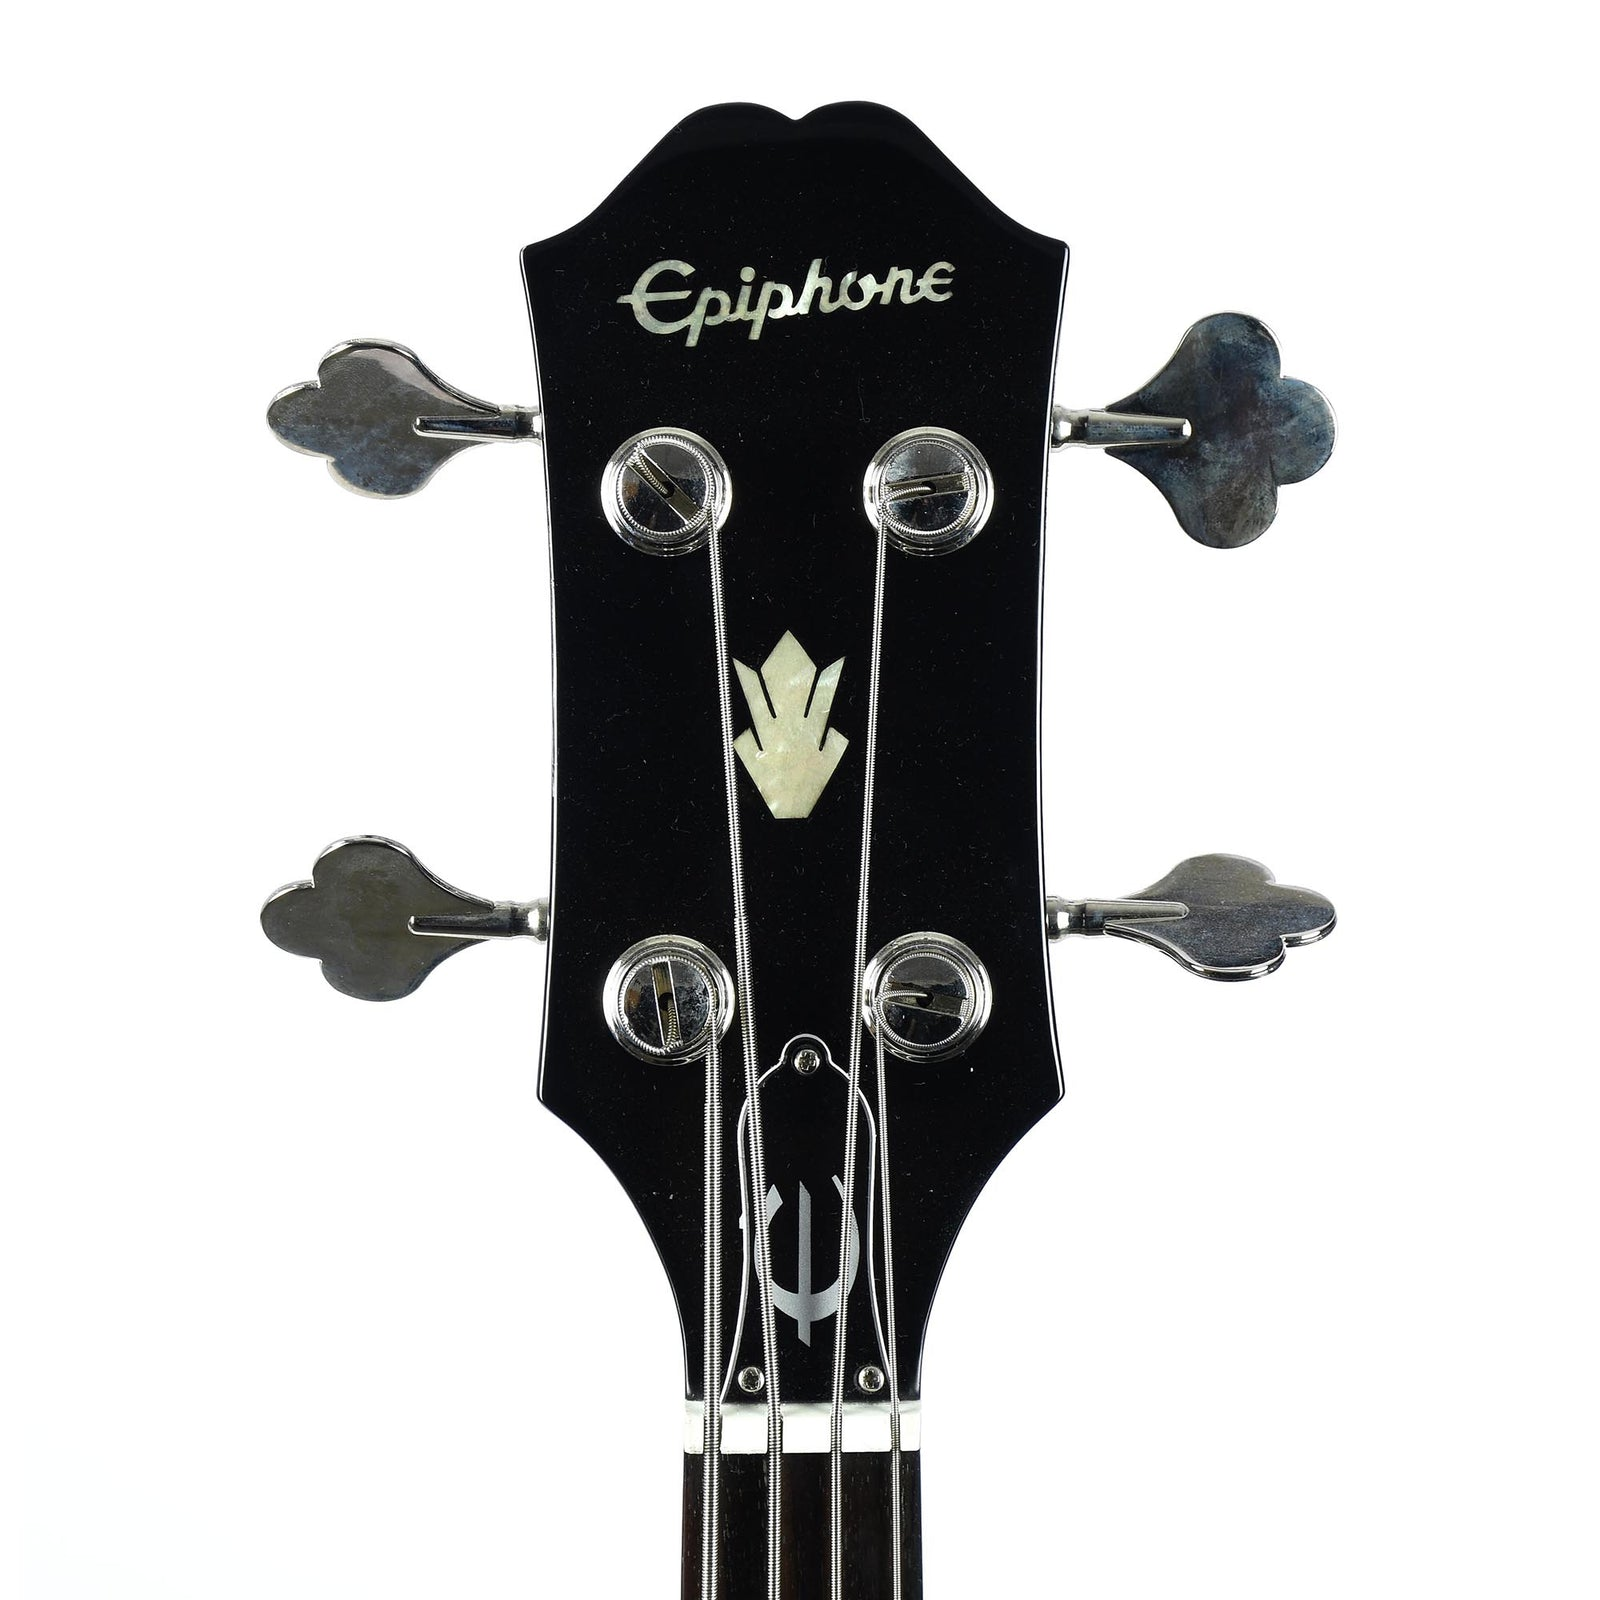 Epiphone EB-3 Bass - Ebony - Chrome Hardware - Used